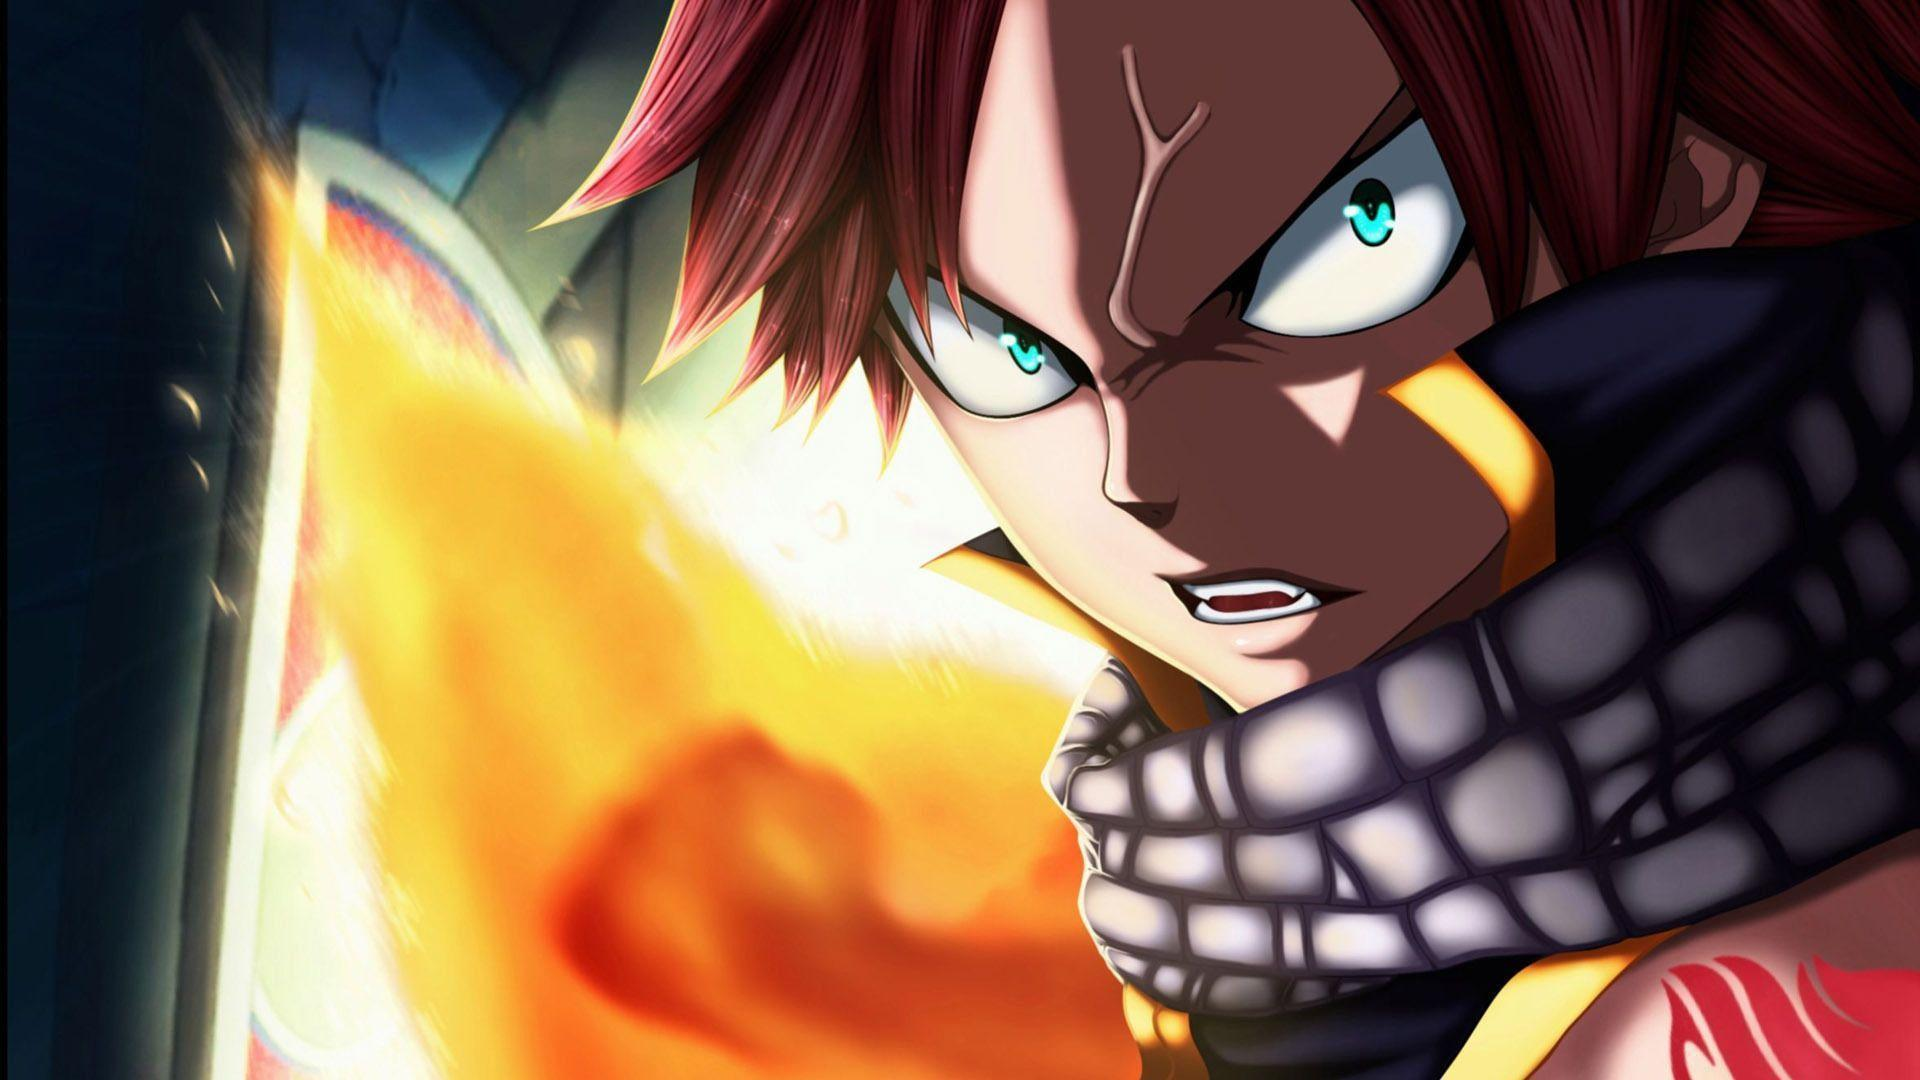 Fairy tail natsu wallpapers wallpaper cave - Imagens em hd de animes ...